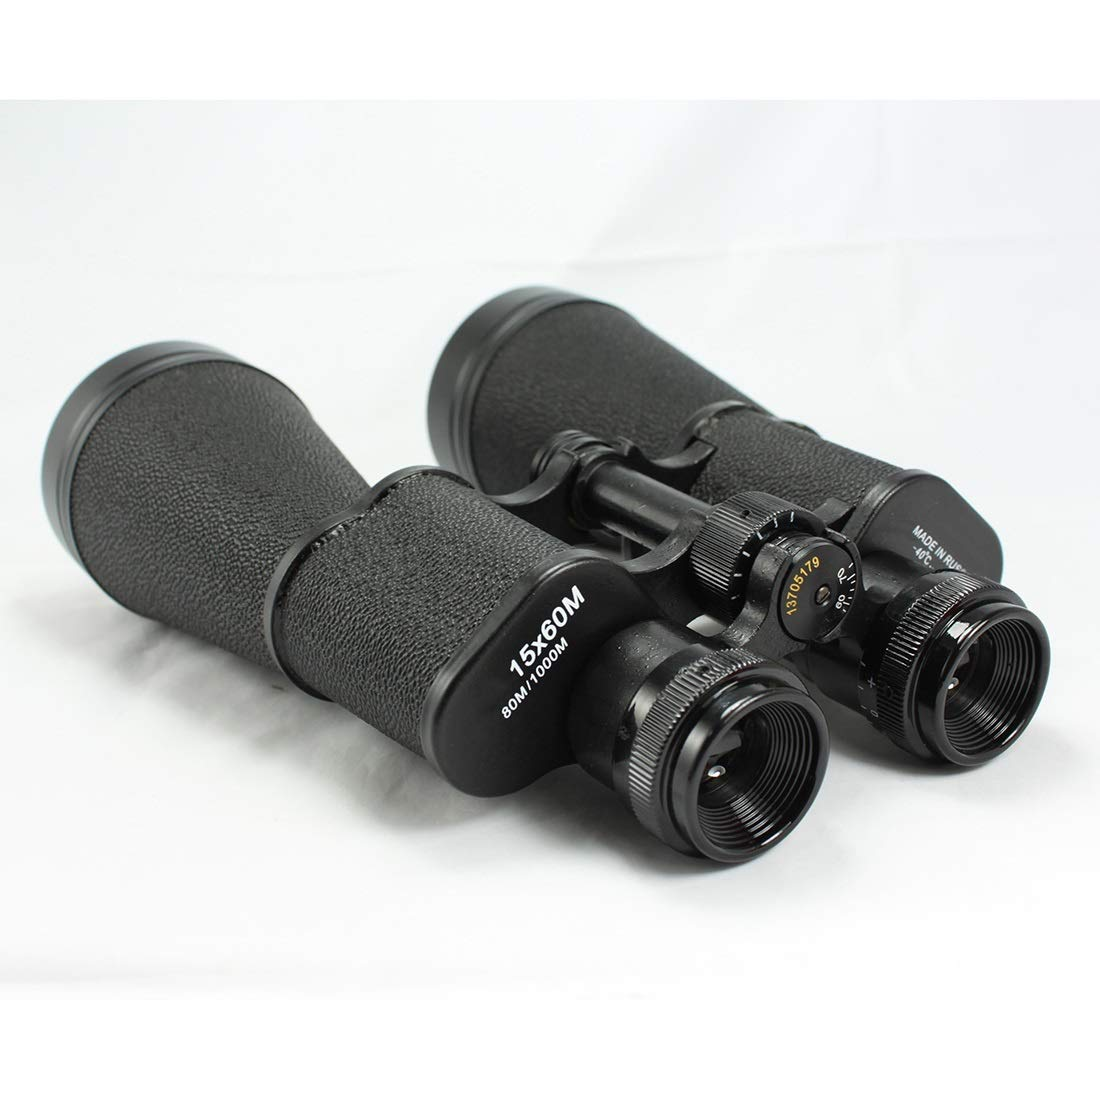 PUWEN 15x60 High Powered Binoculars With Weak Light Night Vision Great for Bird Watching Outdoor Sports Games and Concerts ( Color : Black )